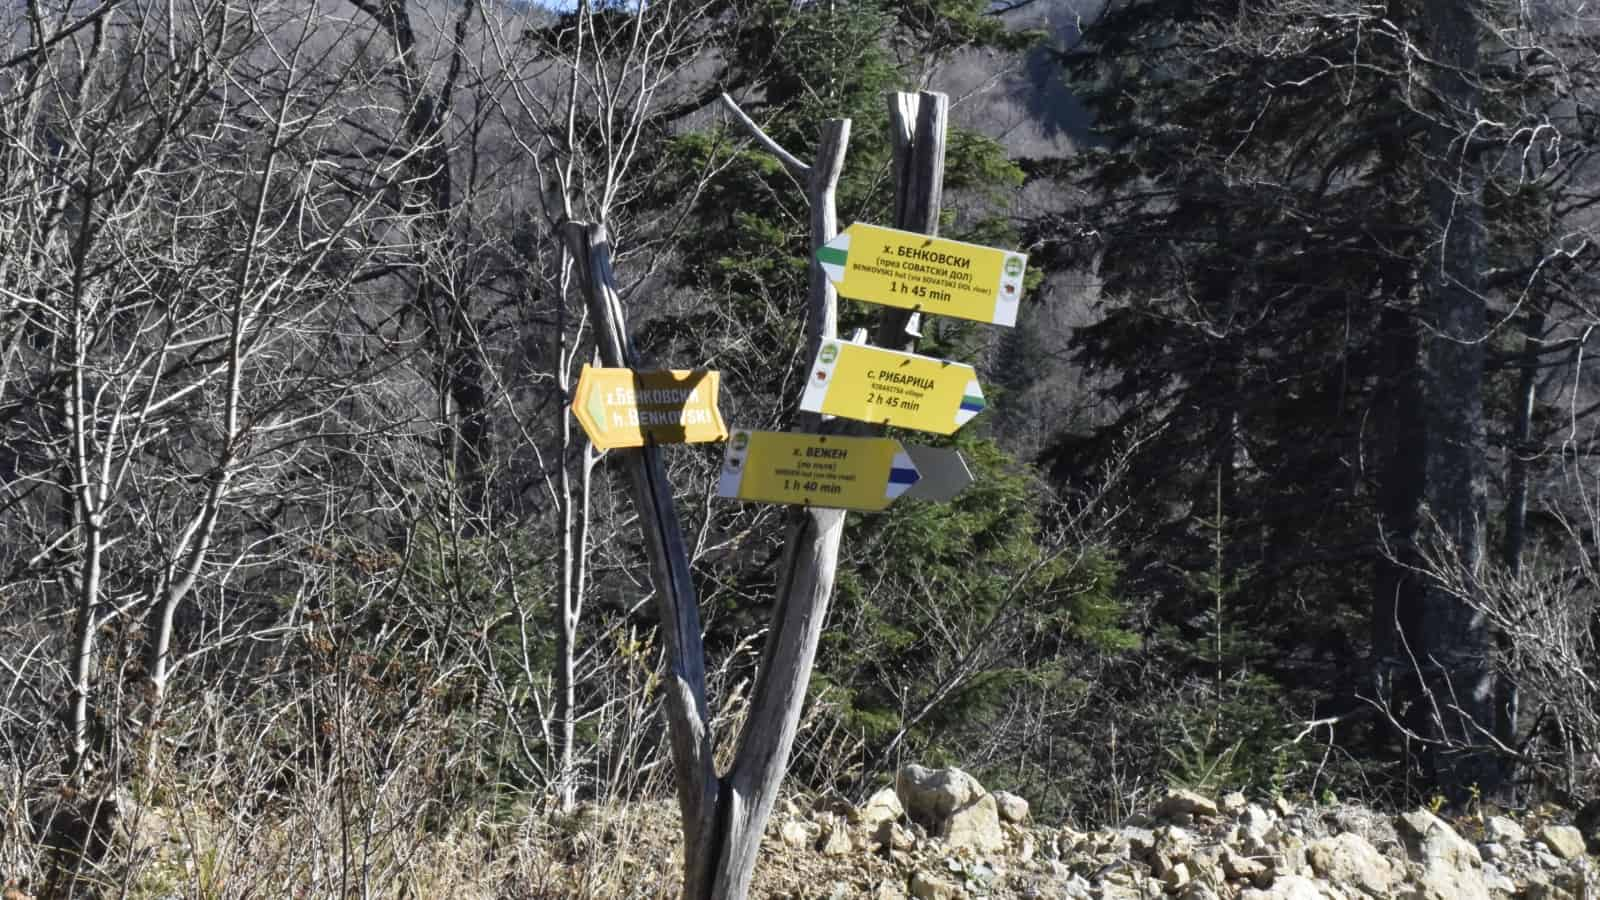 Directional signs - Photo: Central Balkan National Park/Stoyan Hristov